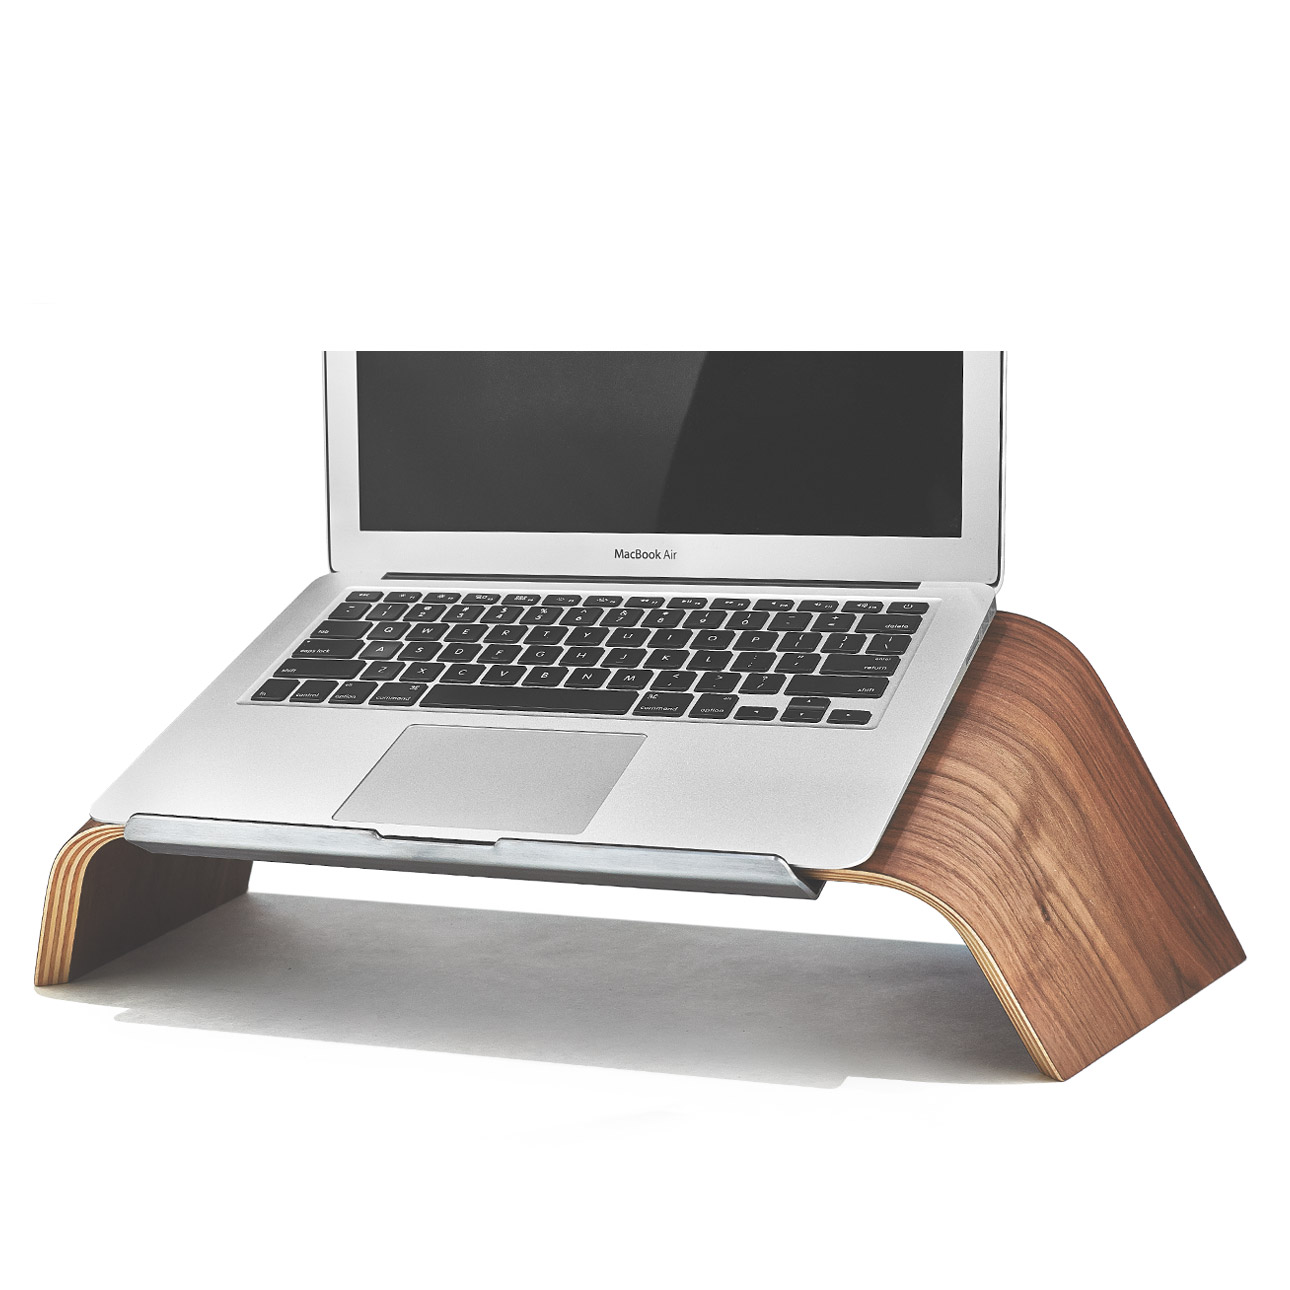 Laptop Holder For Bed Wood Laptop Stand Walnut Platform Laptop Holder